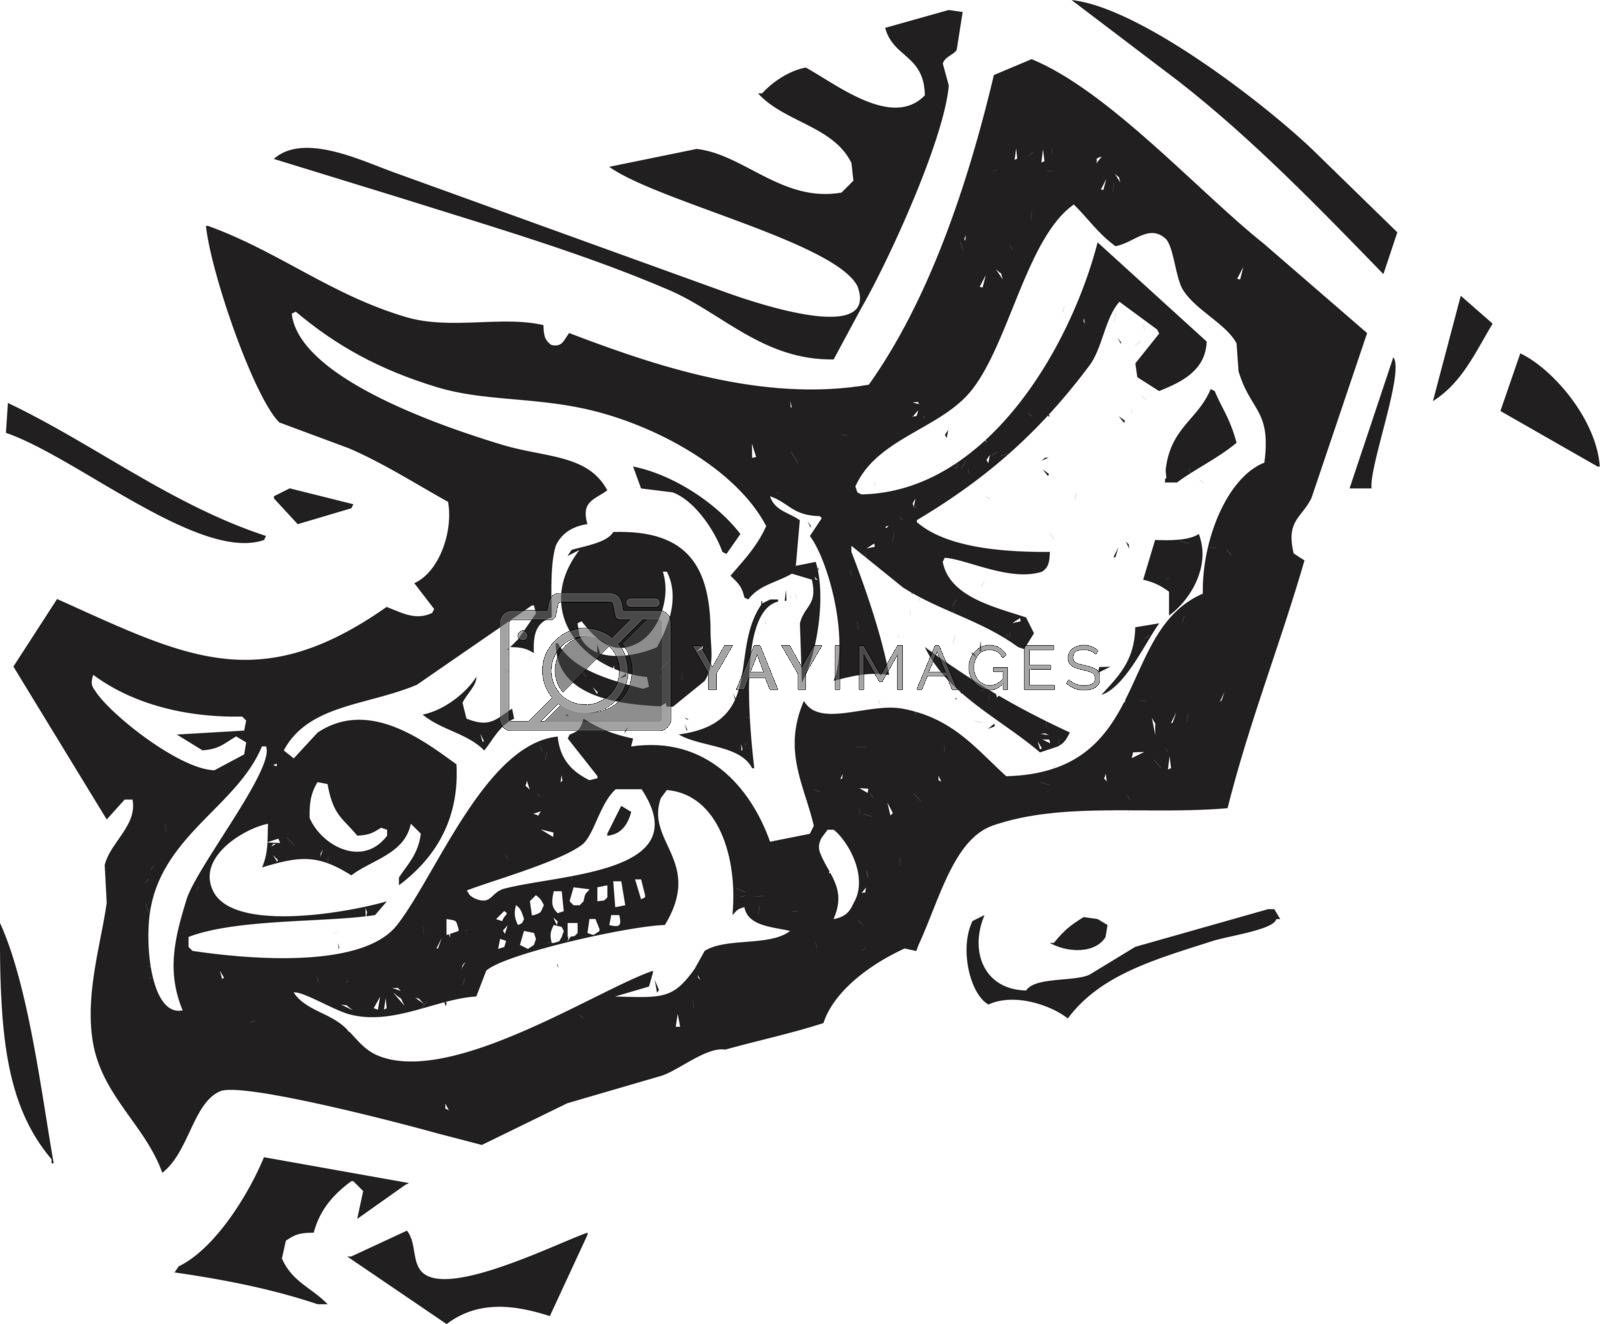 Woodcut style image of a fossil of a Triceratops dinosaur skull